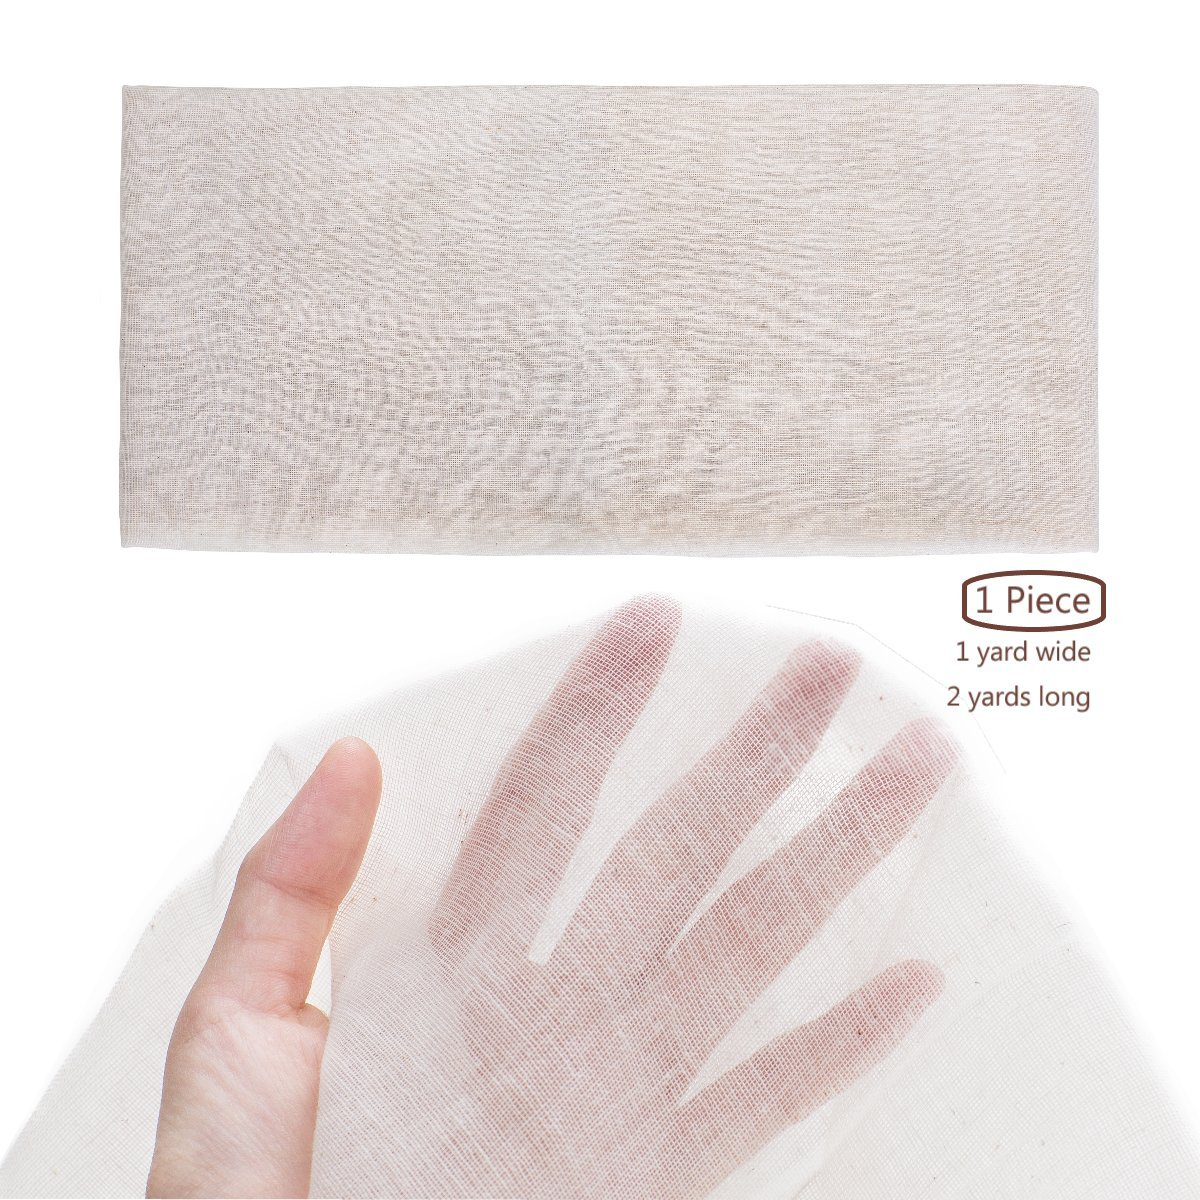 Unbleached ,Nut Milk Bag,Cheesecloth Strainer Bag,Pressing Cloth Food Grade 1 Cheesecloth 【Grade 90】【18 Sq Feet】,100/% Natural Cotton Reusable Produce Bags